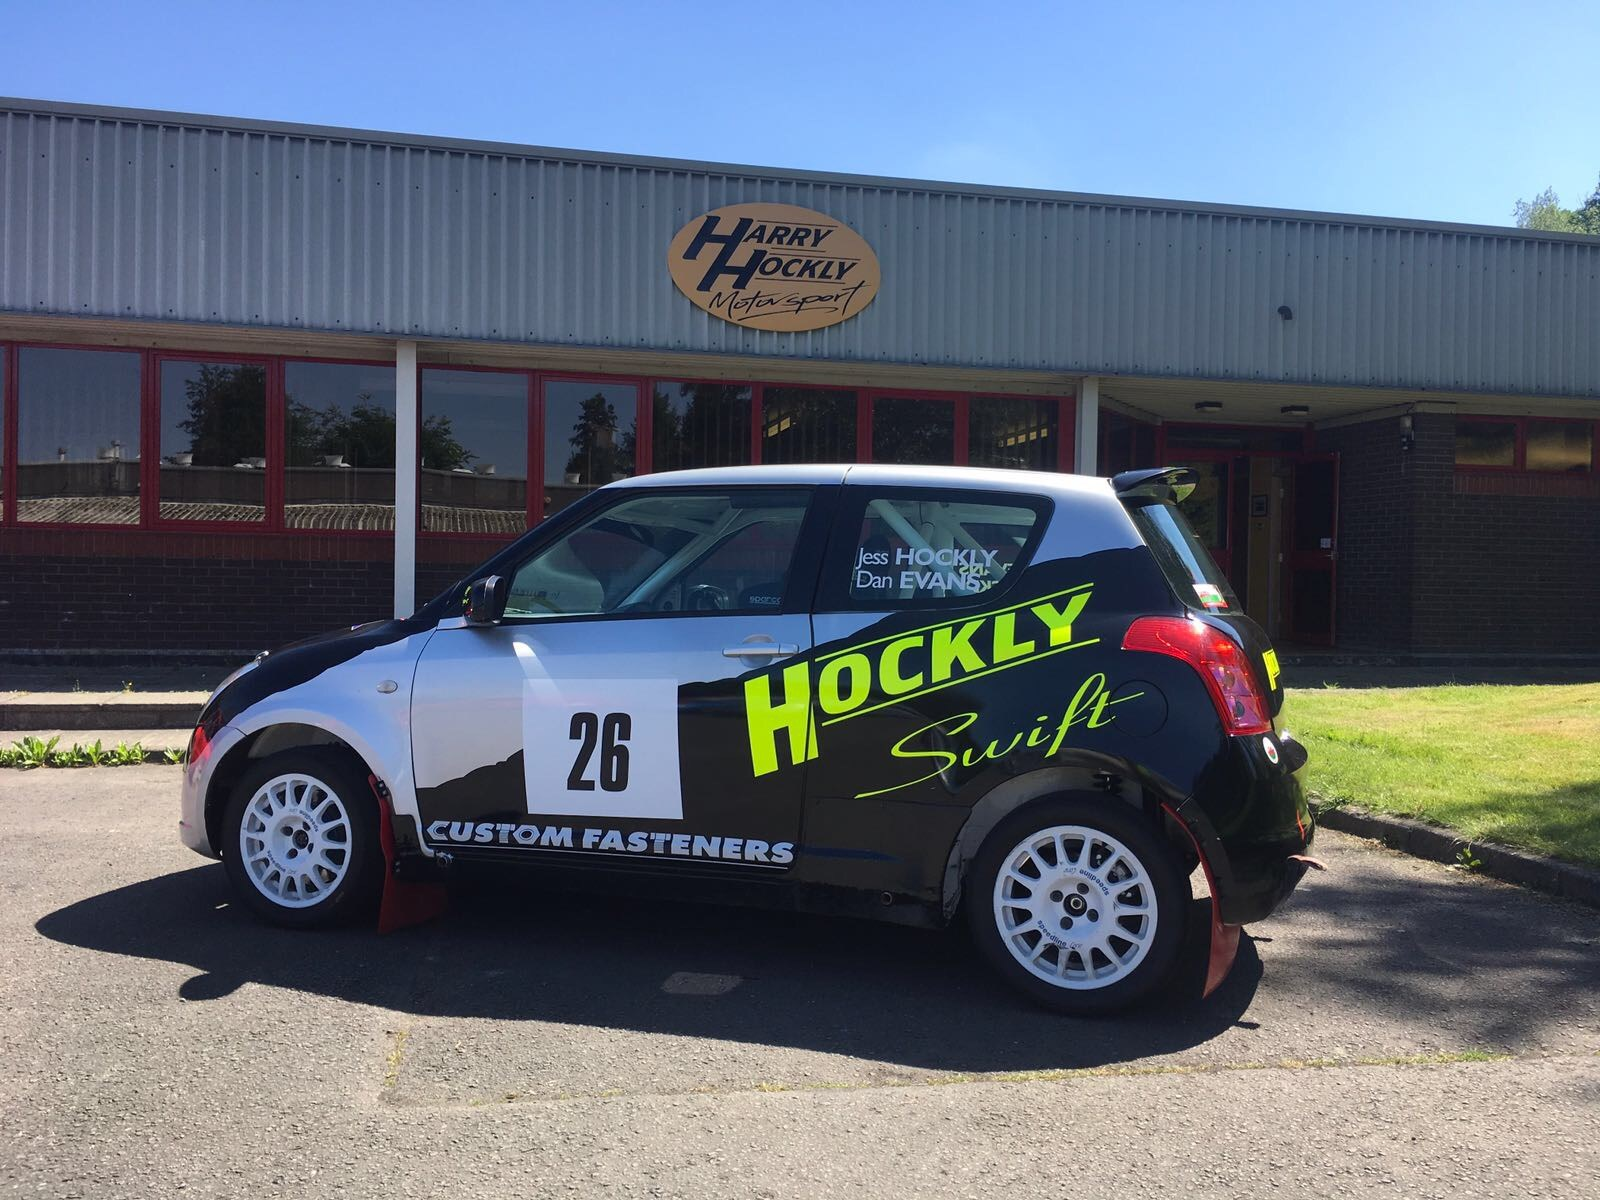 MSVR News - Motorsport News Circuit Rally Championship Launches Hockly Swift Cup